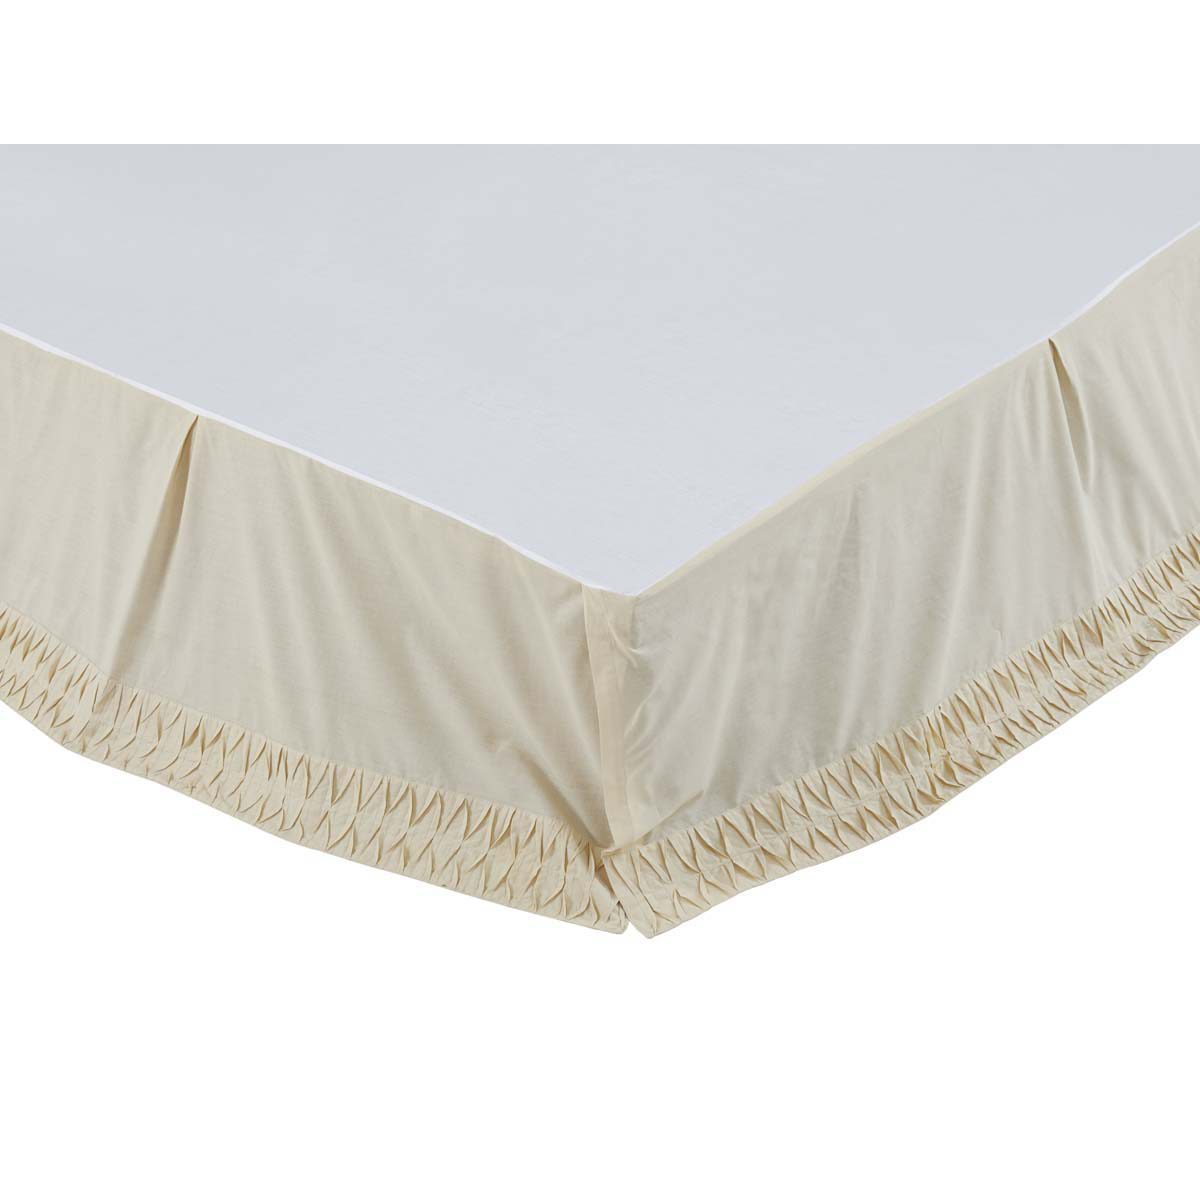 Adelia - Creme - Soft Cotton - Bed Skirt